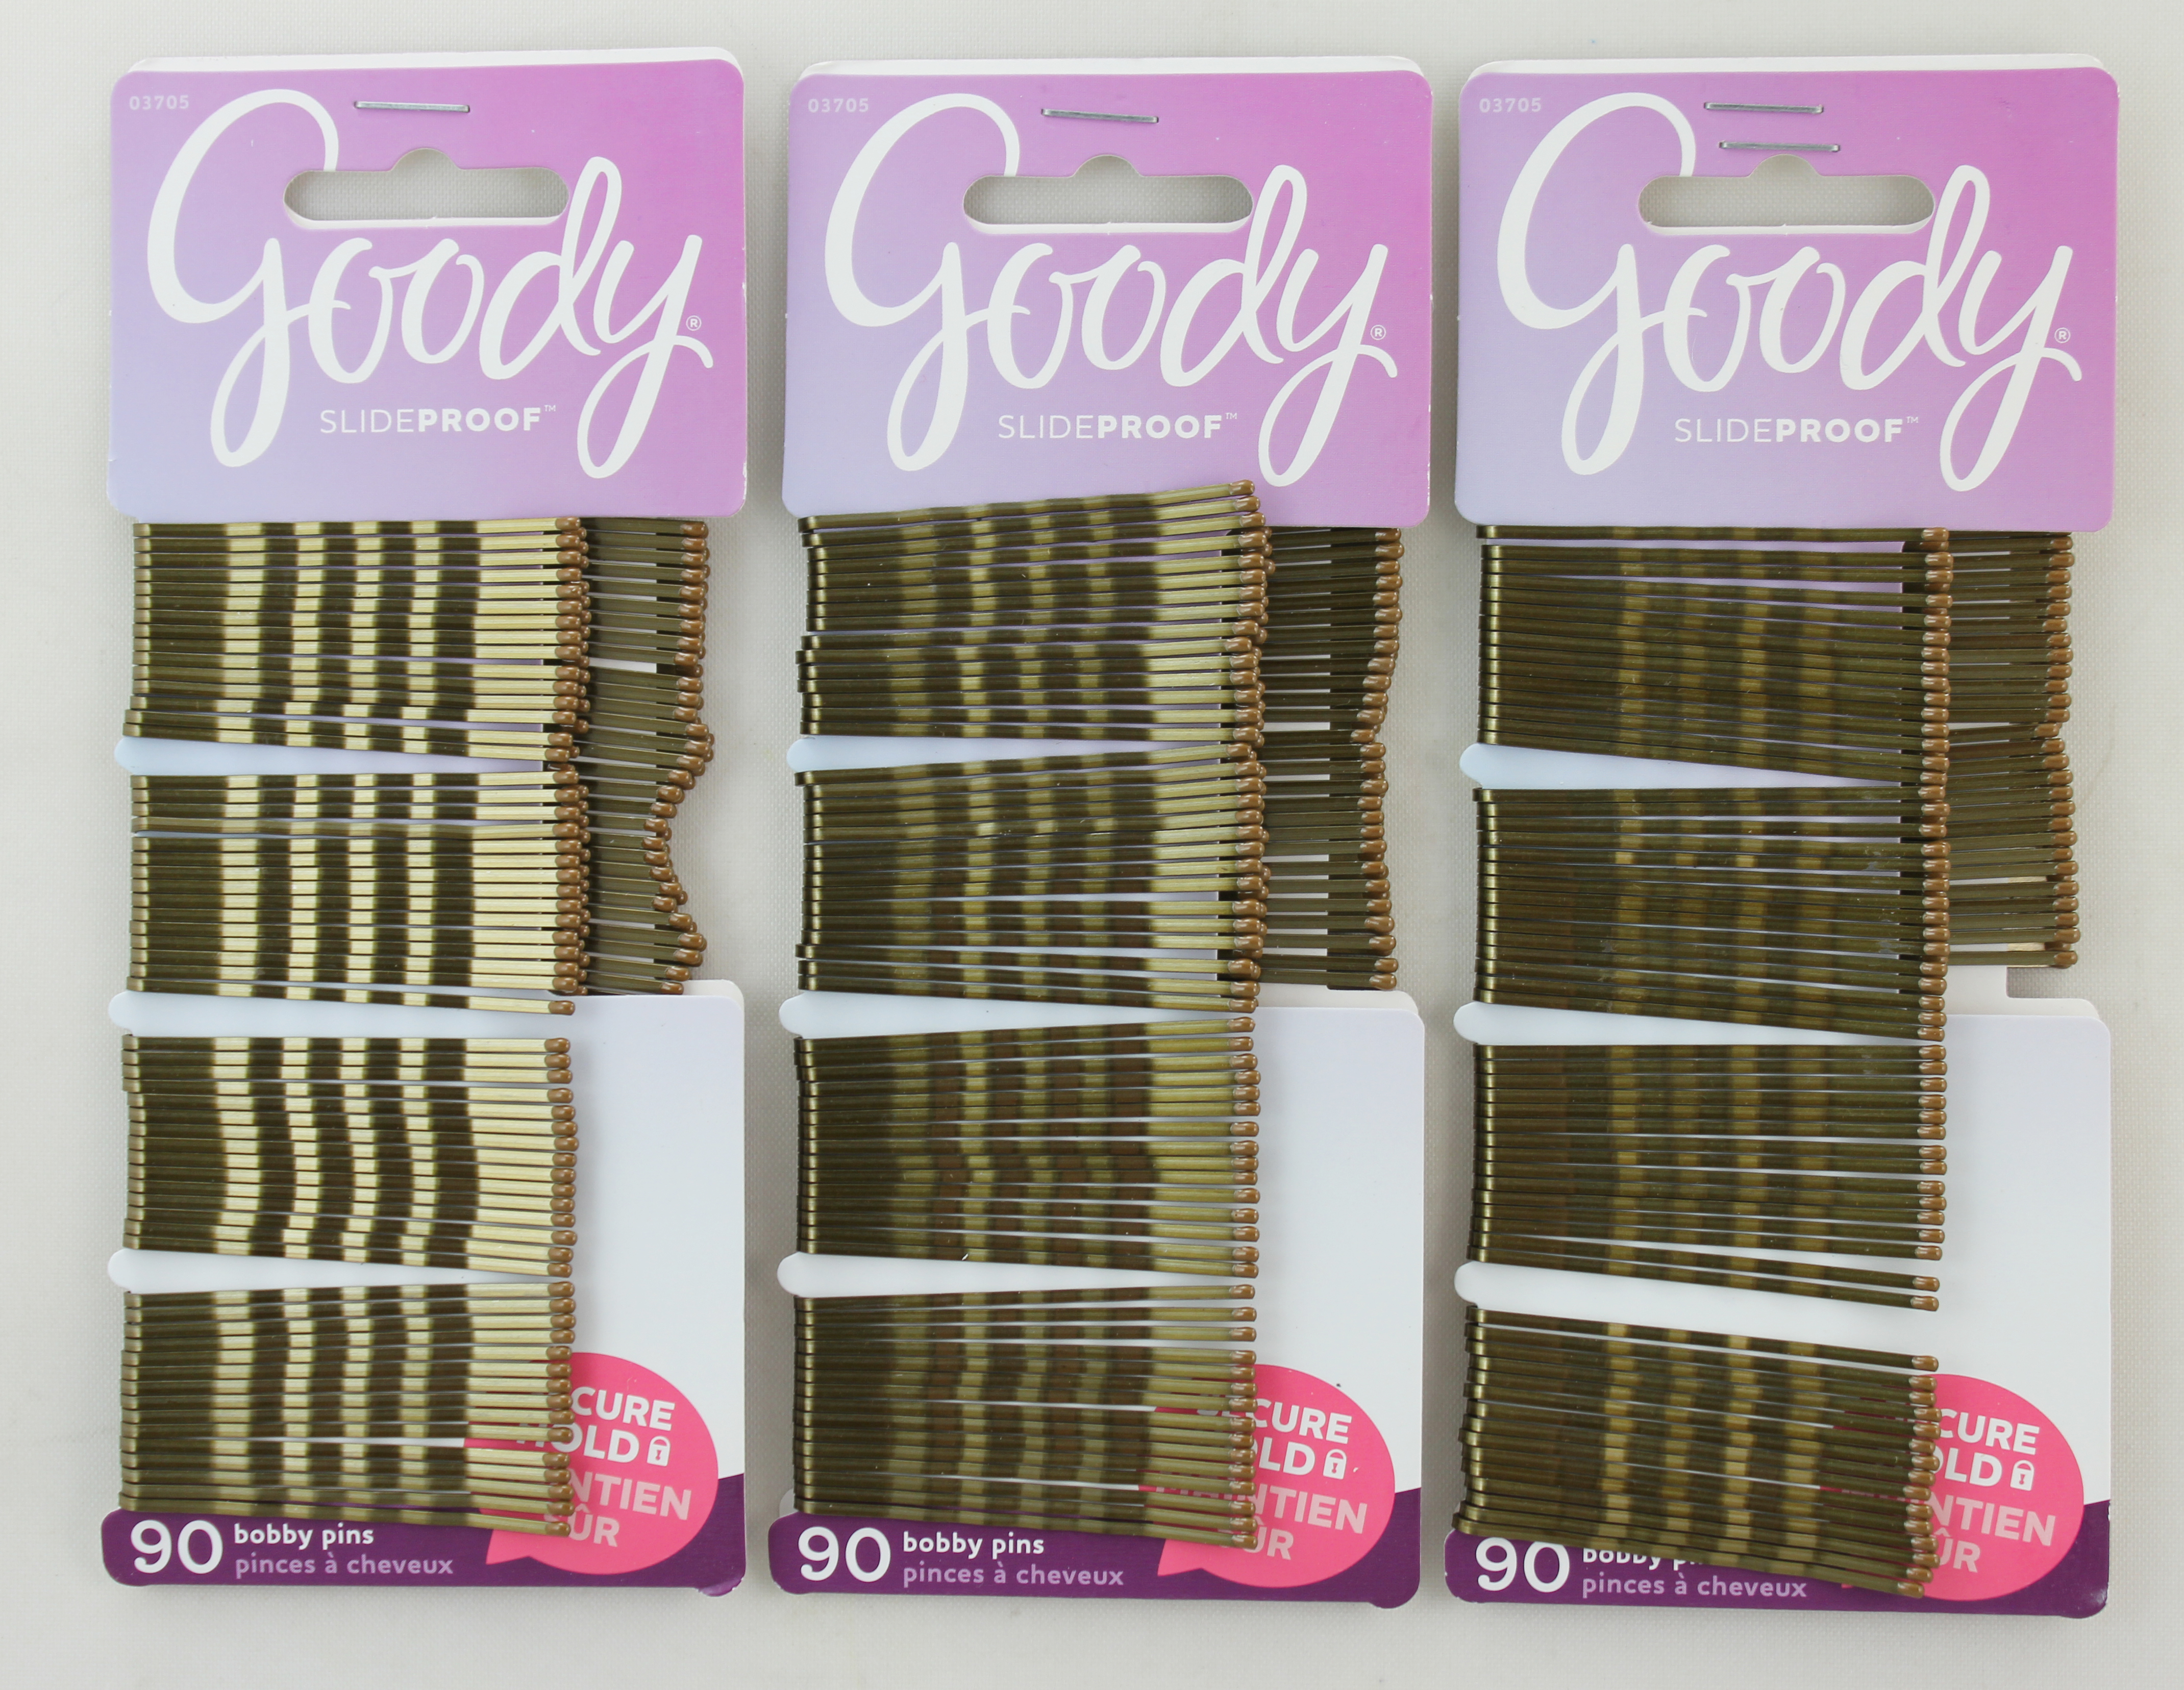 Goody Brown Bobby Pins 90 Count